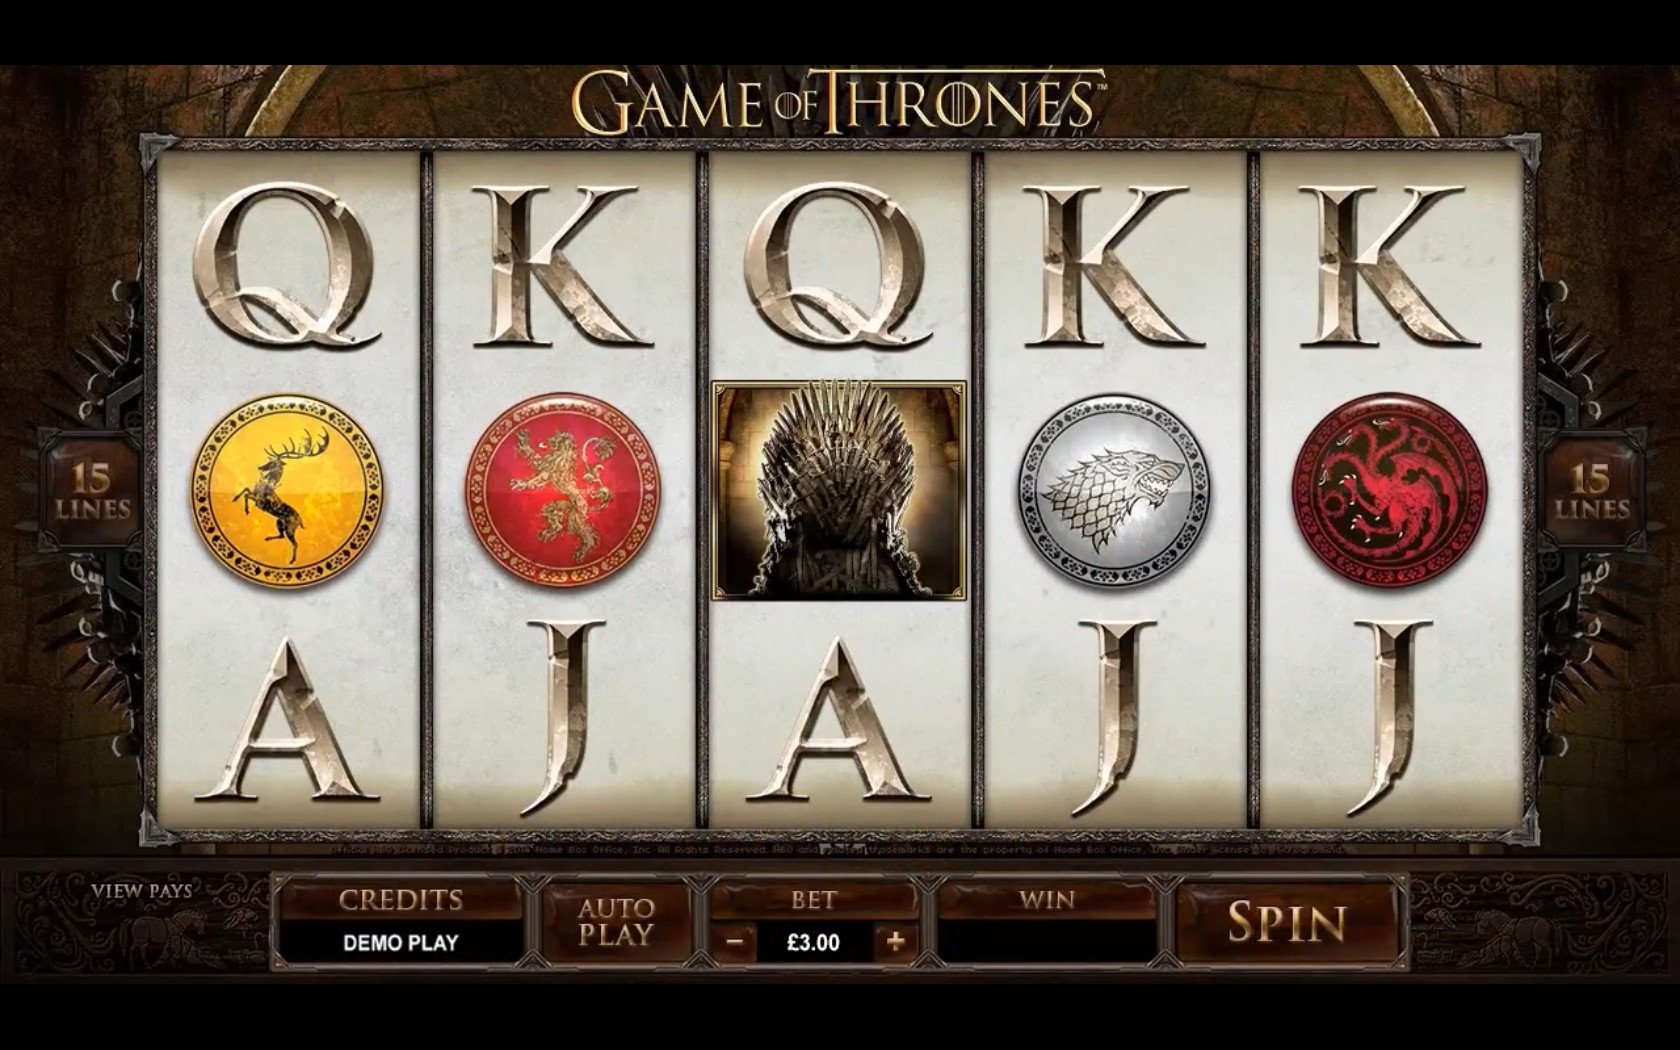 The slot machine Game of Thrones